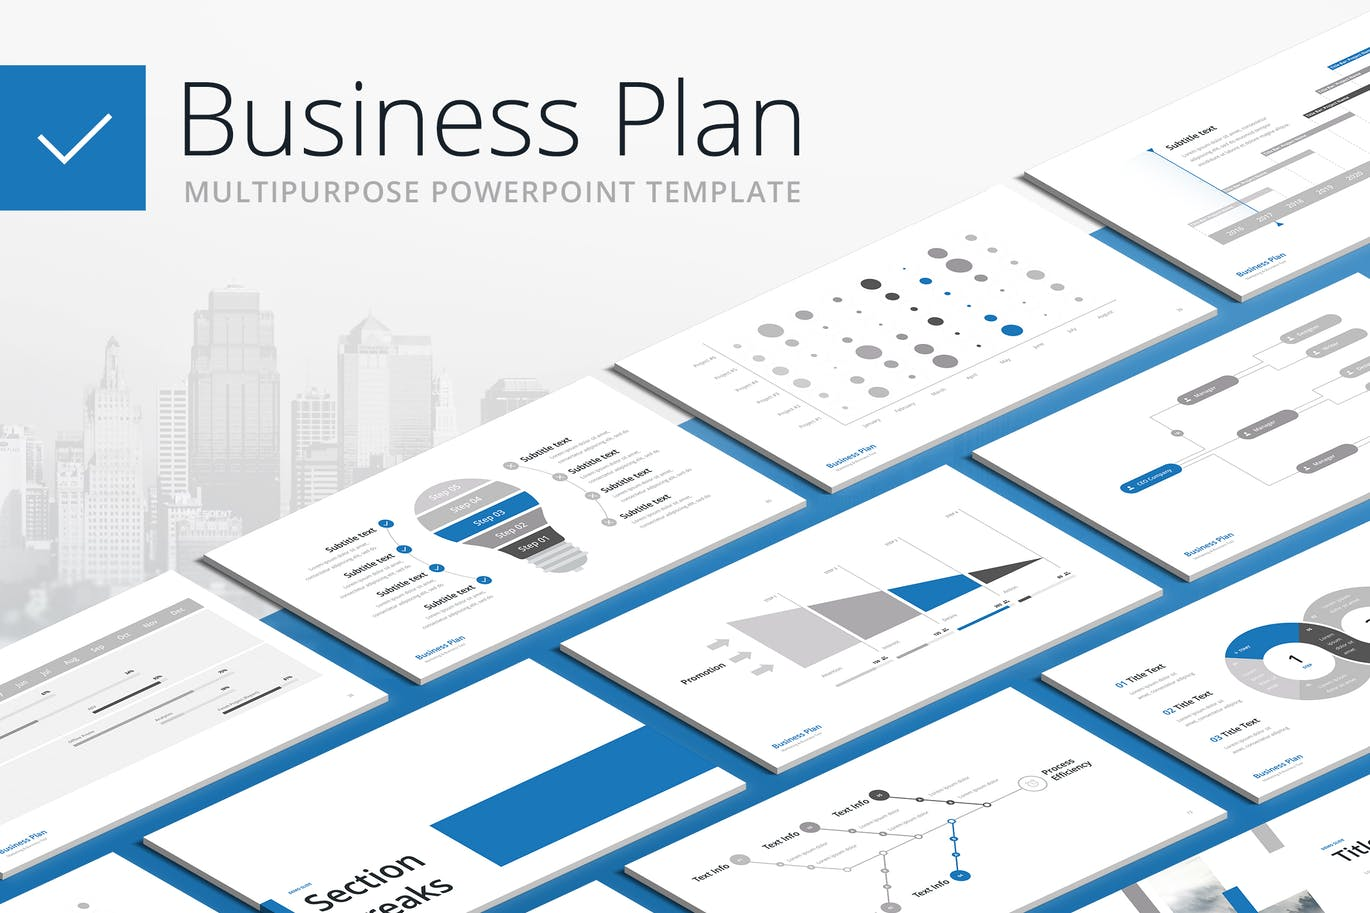 Business Plan Multipurpose Powerpoint Template By Site2max On Each Of The Diagram Elements Is Created As A Envato